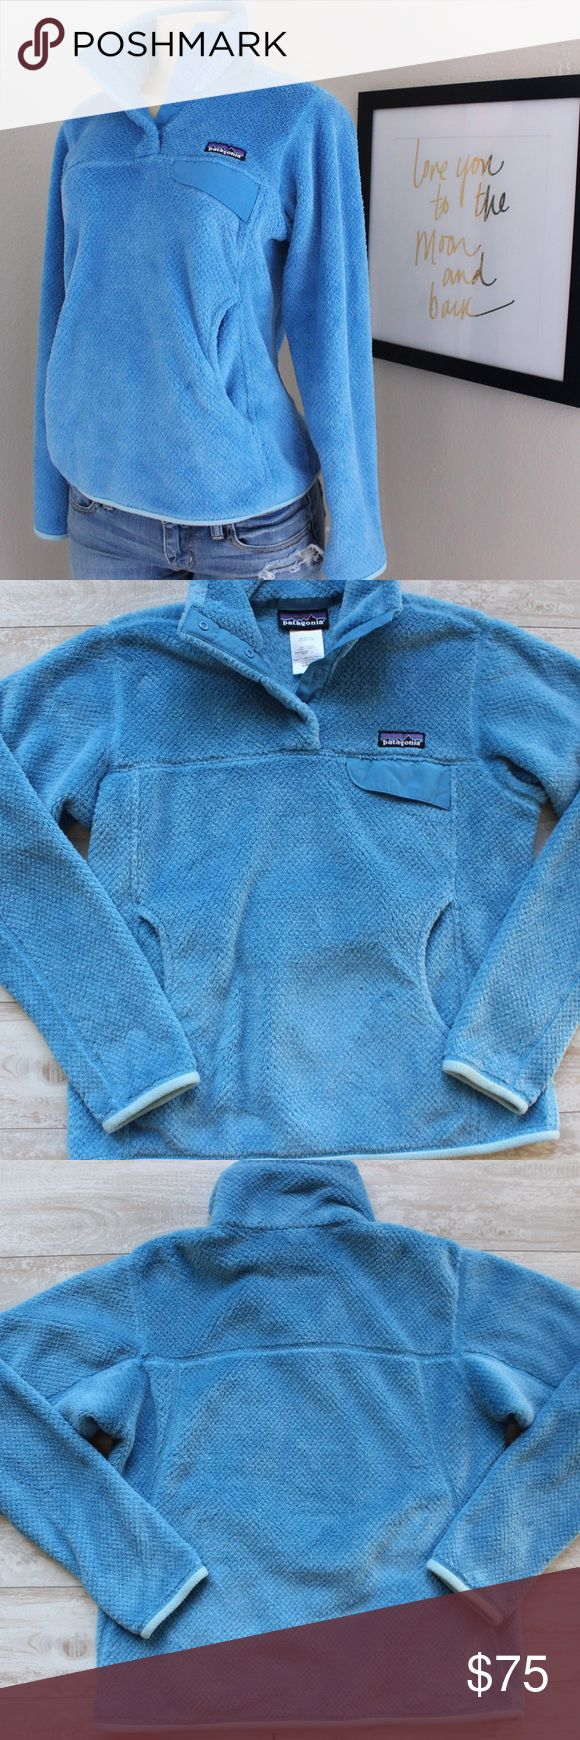 Patagonia Retool Sweater Pullover⭐️ Patagonia retool Pullover Sweater, EUC, absolutely stunning sky blue color, size small, keeps you warm and looking super cute ⭐️ Patagonia Sweaters